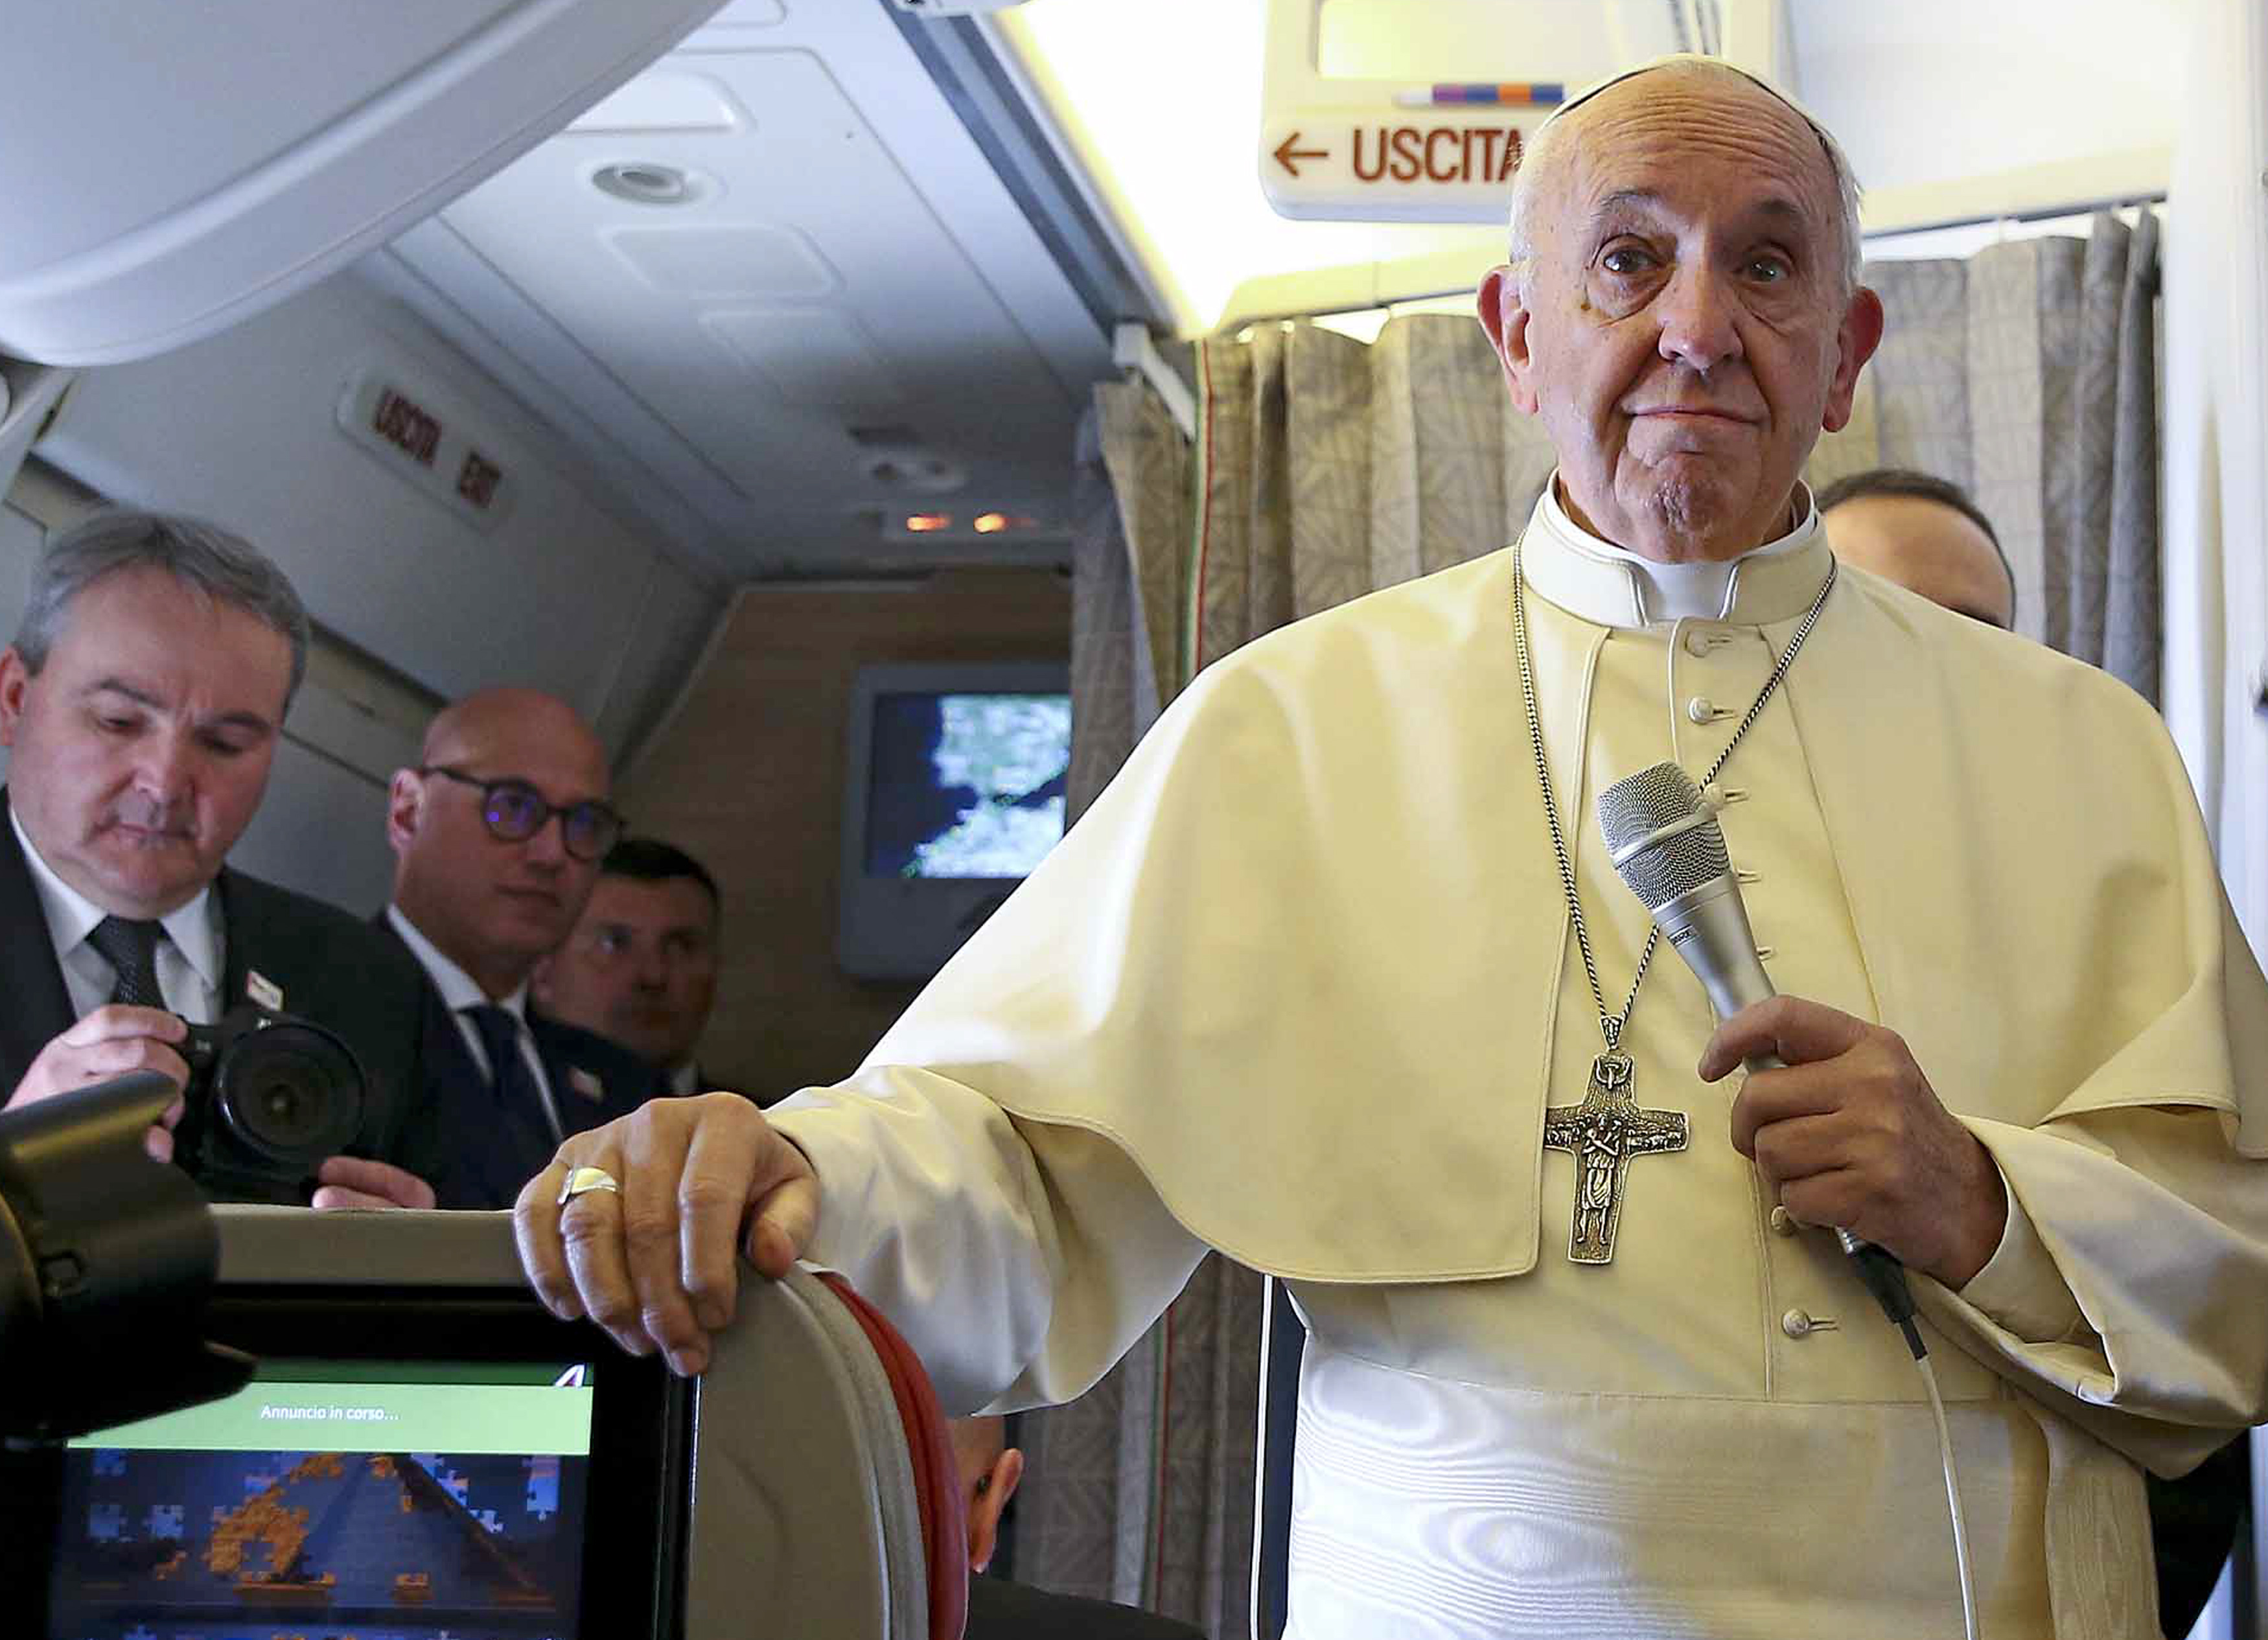 Pope Francis addresses journalists aboard the plane for his trip to Chile and Peru, on January 15, 2018.